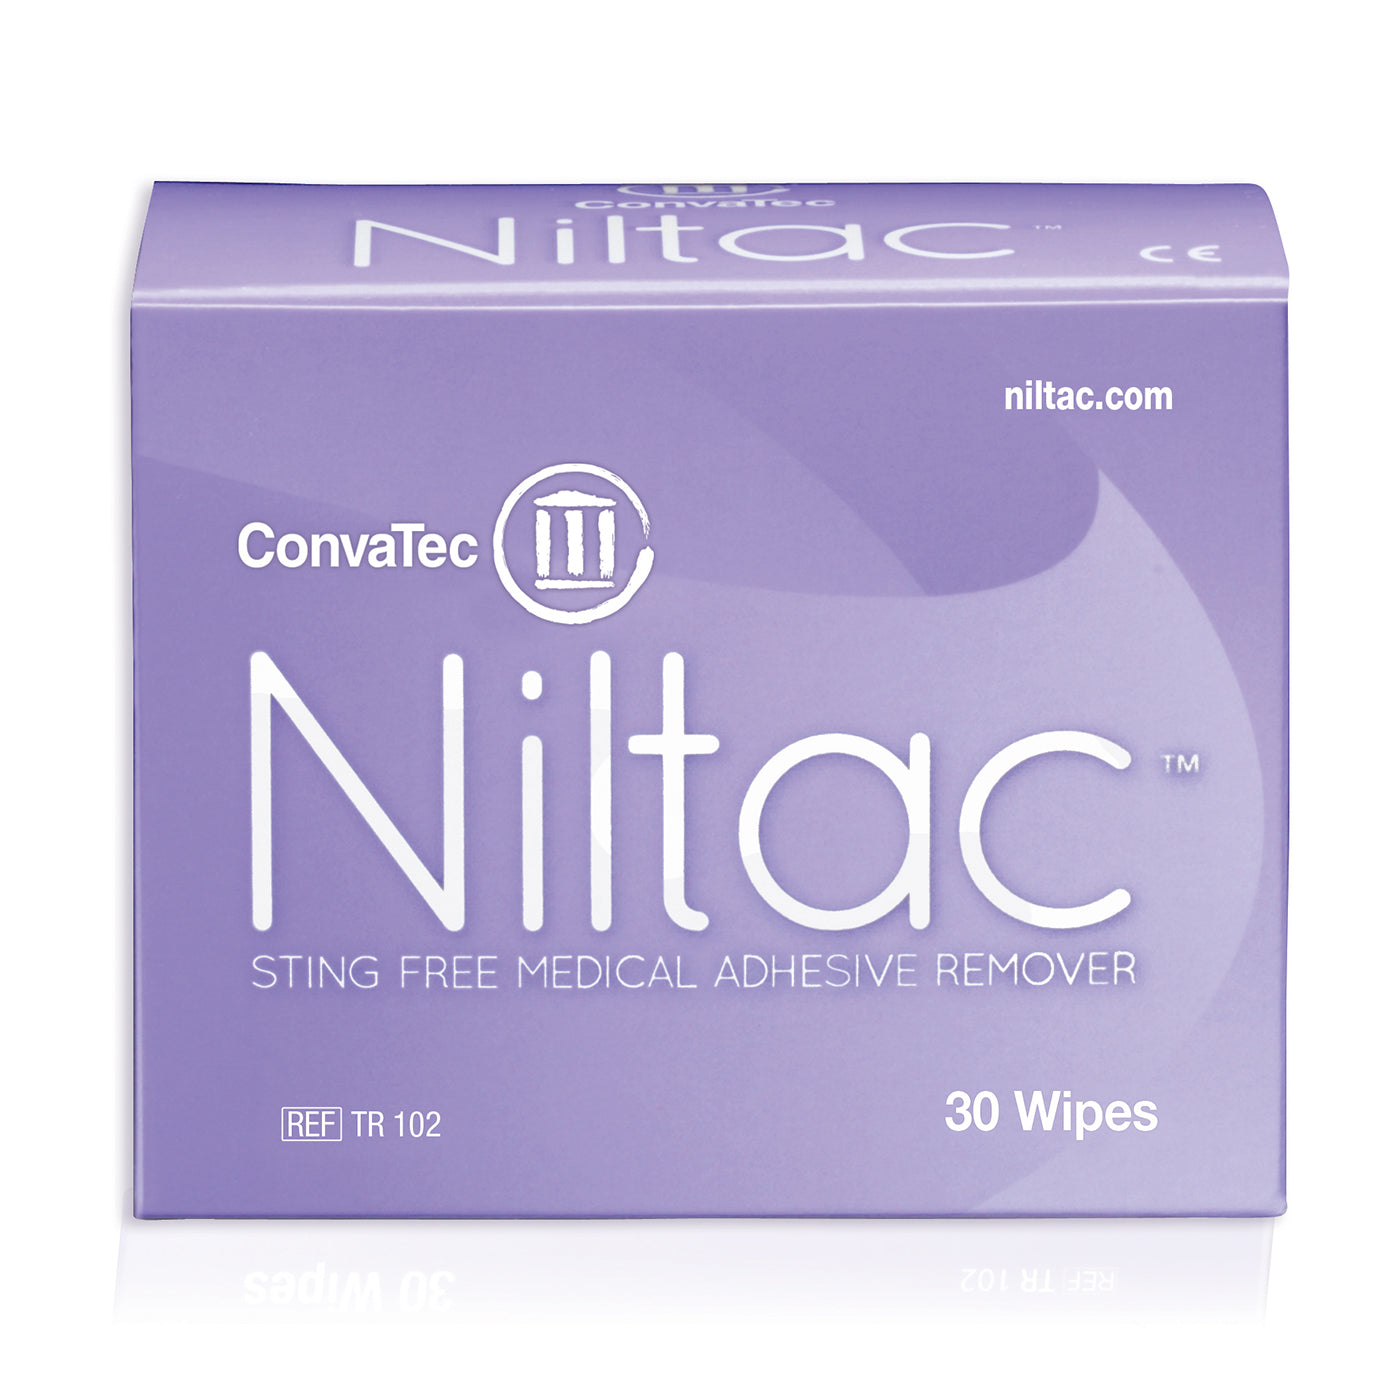 A 30PK Box Of ConvaTec Niltac Sting Free Medical Adhesive Remover Wipes